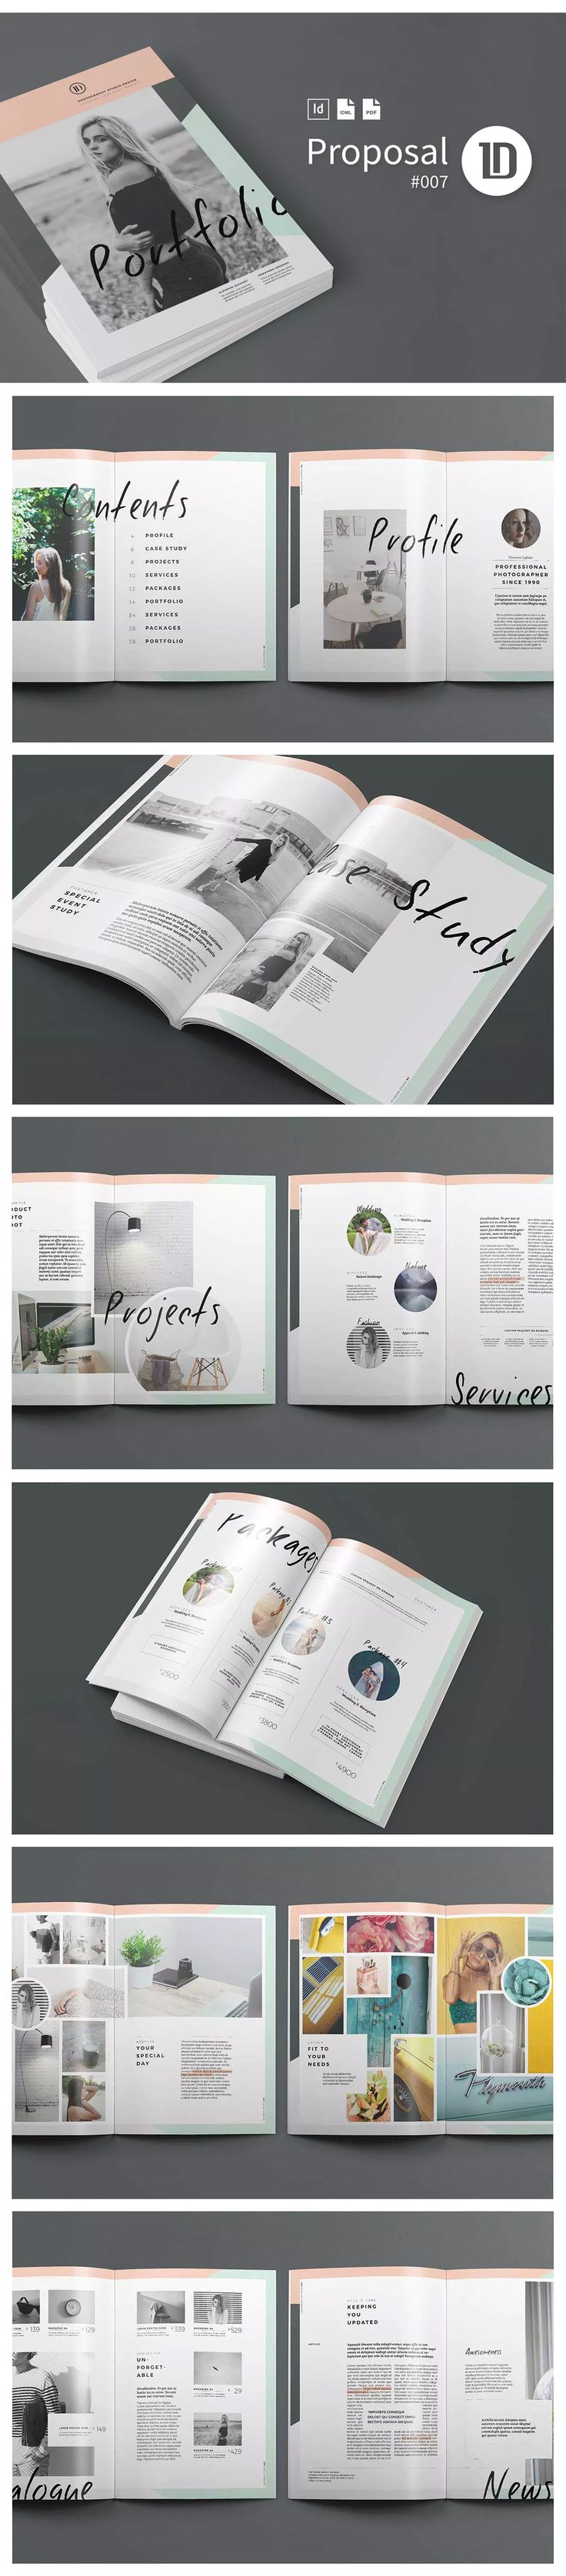 Portfolio Template INDD, EPS - 40 Pages A4 and US Letter Size